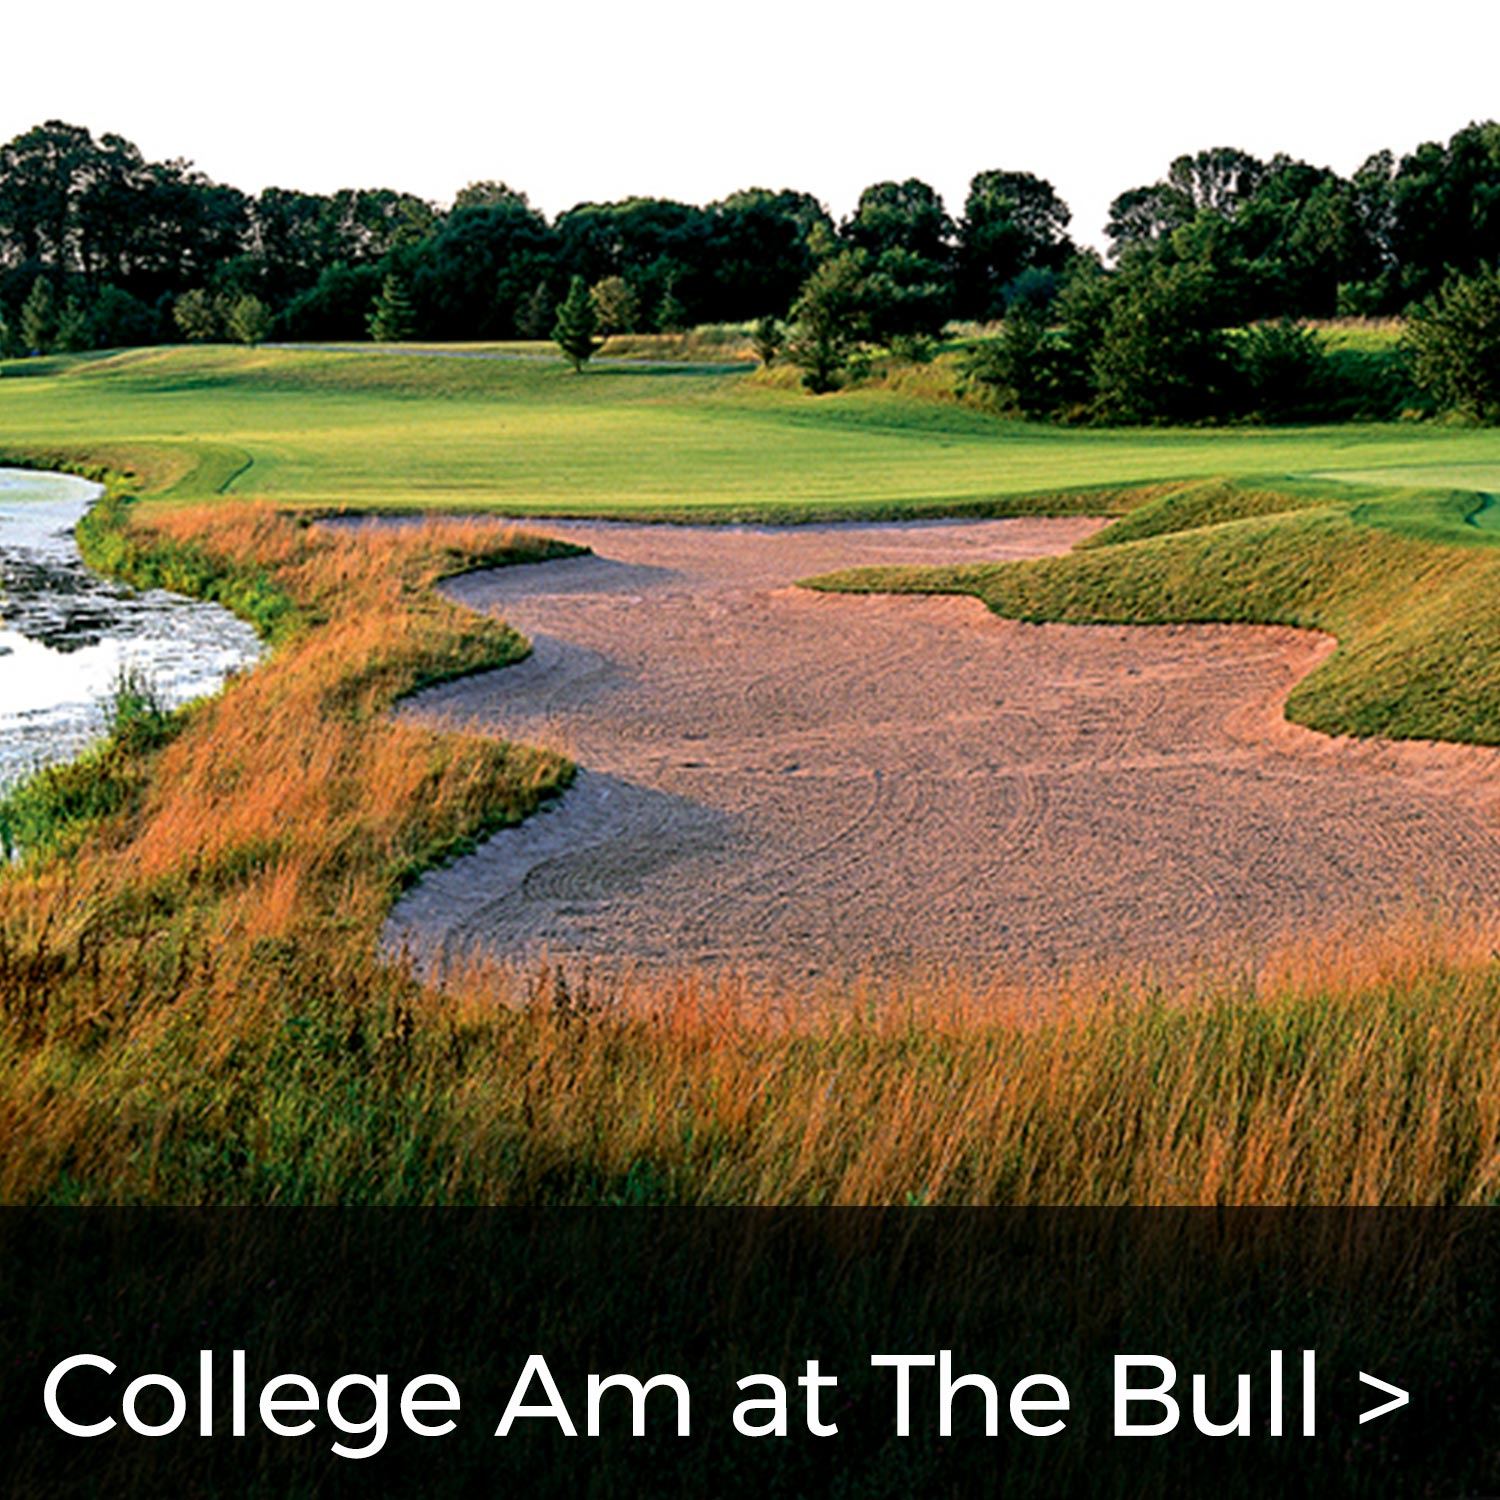 College AM at The Bull